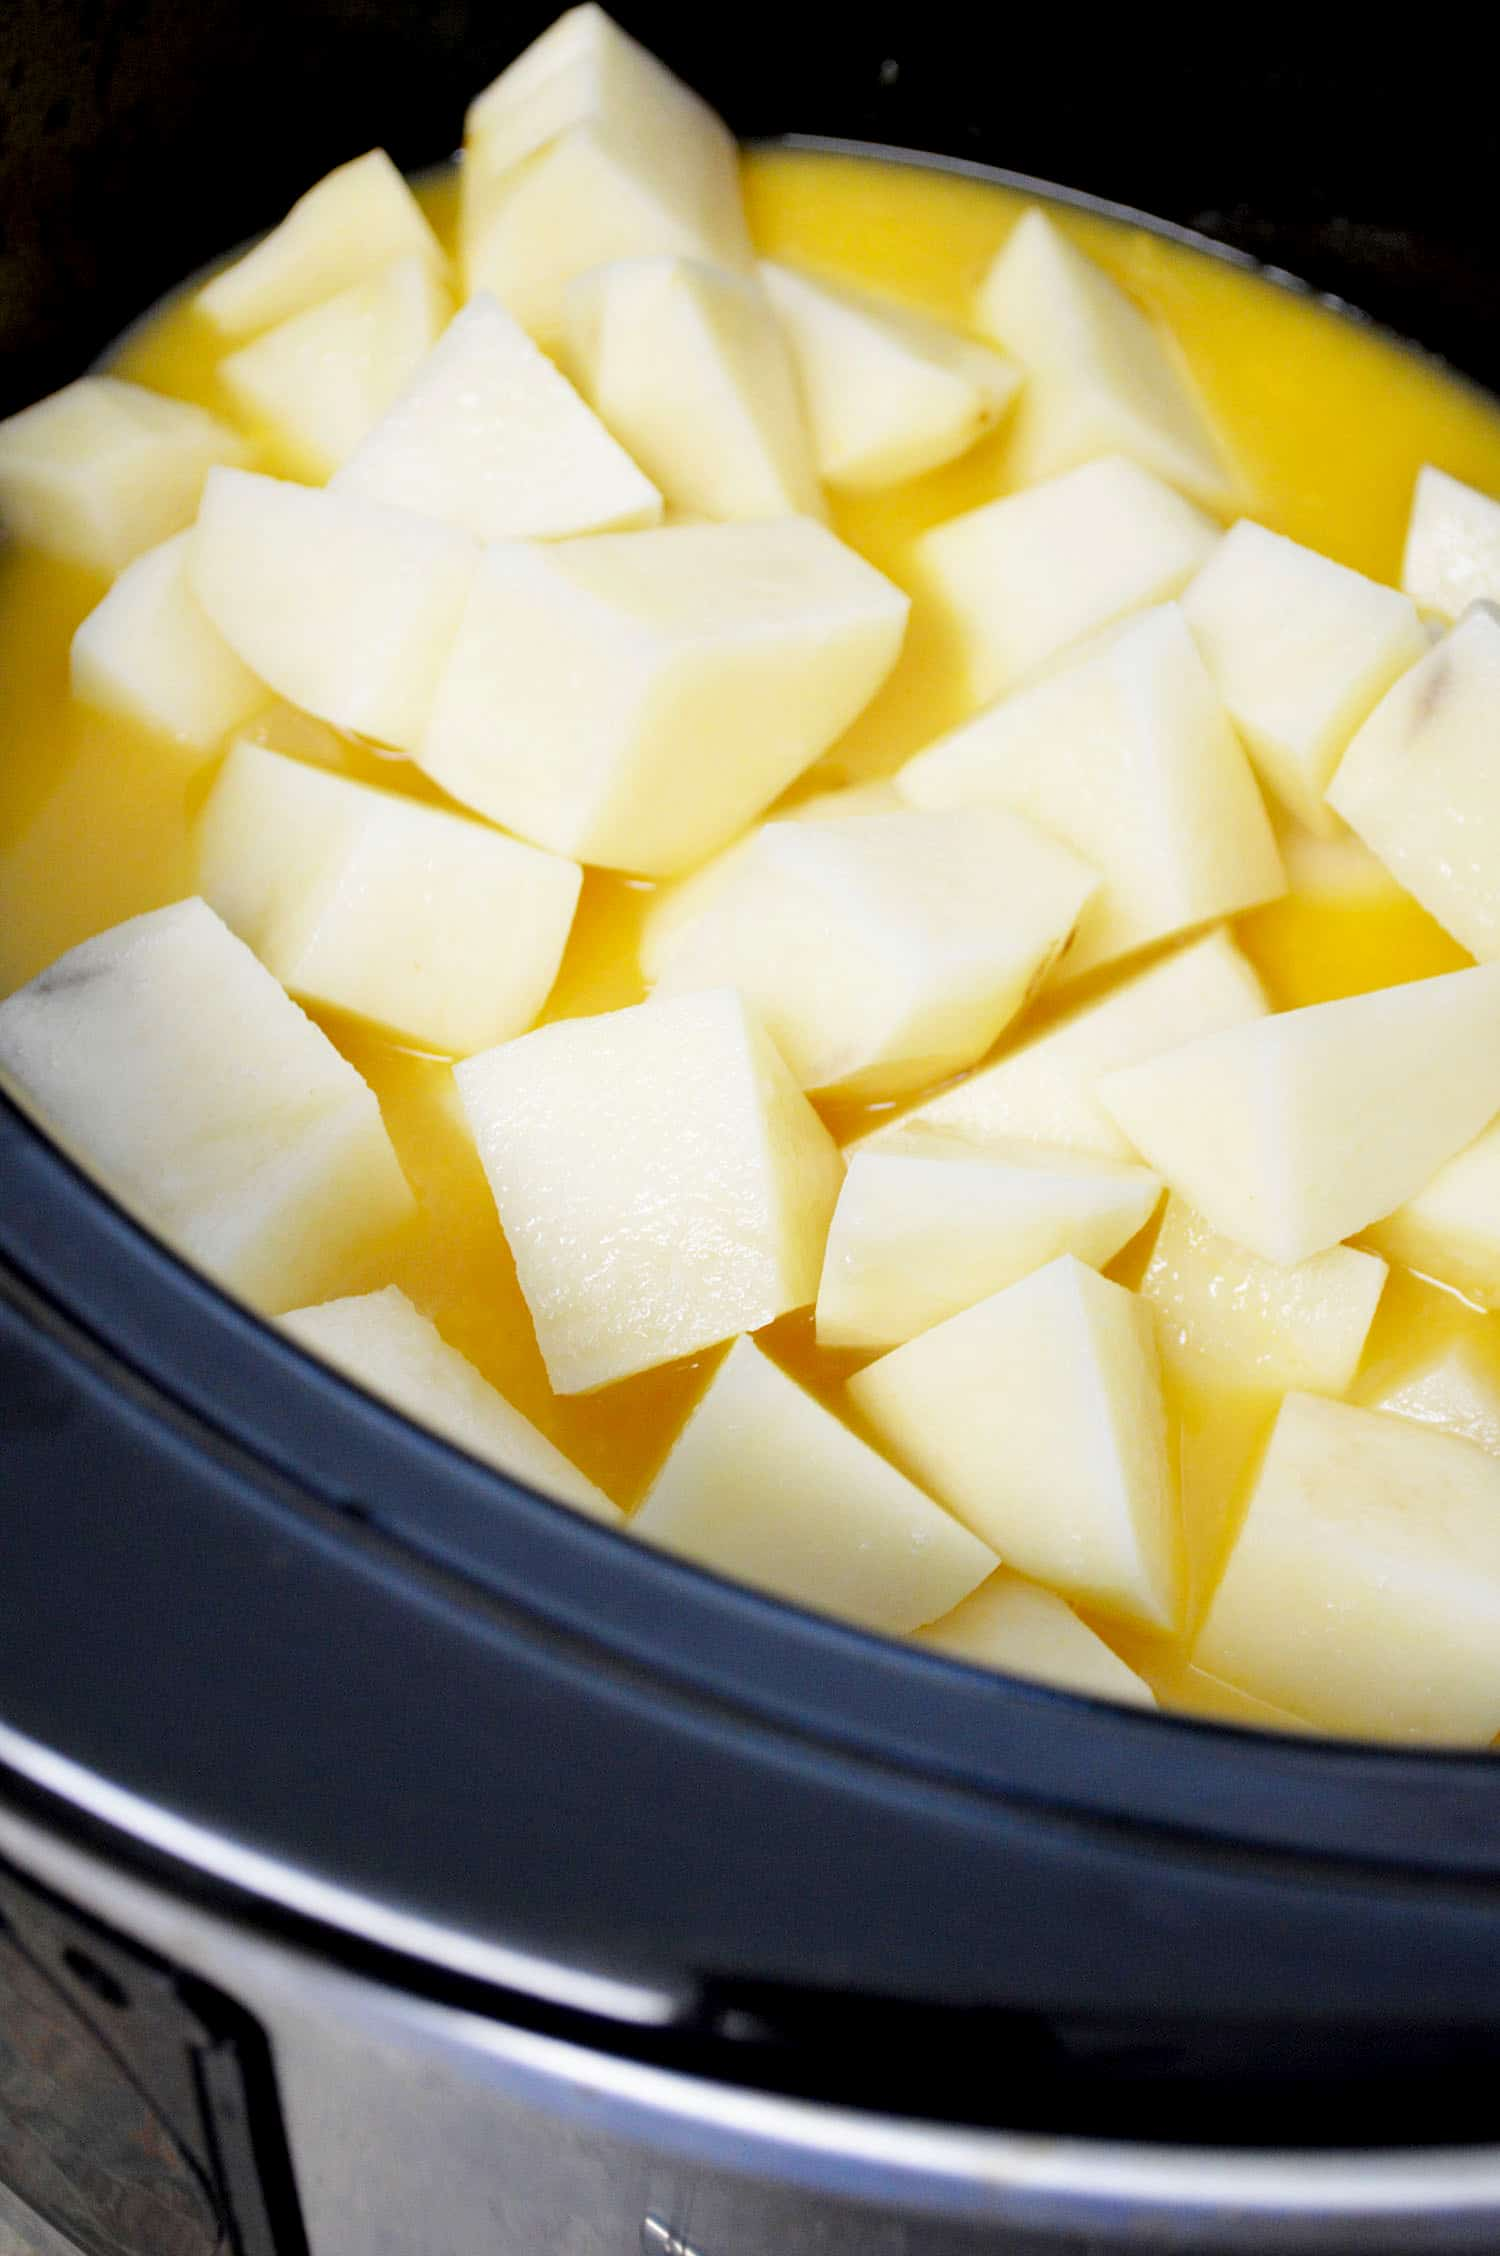 diced potatoes in slow cooker